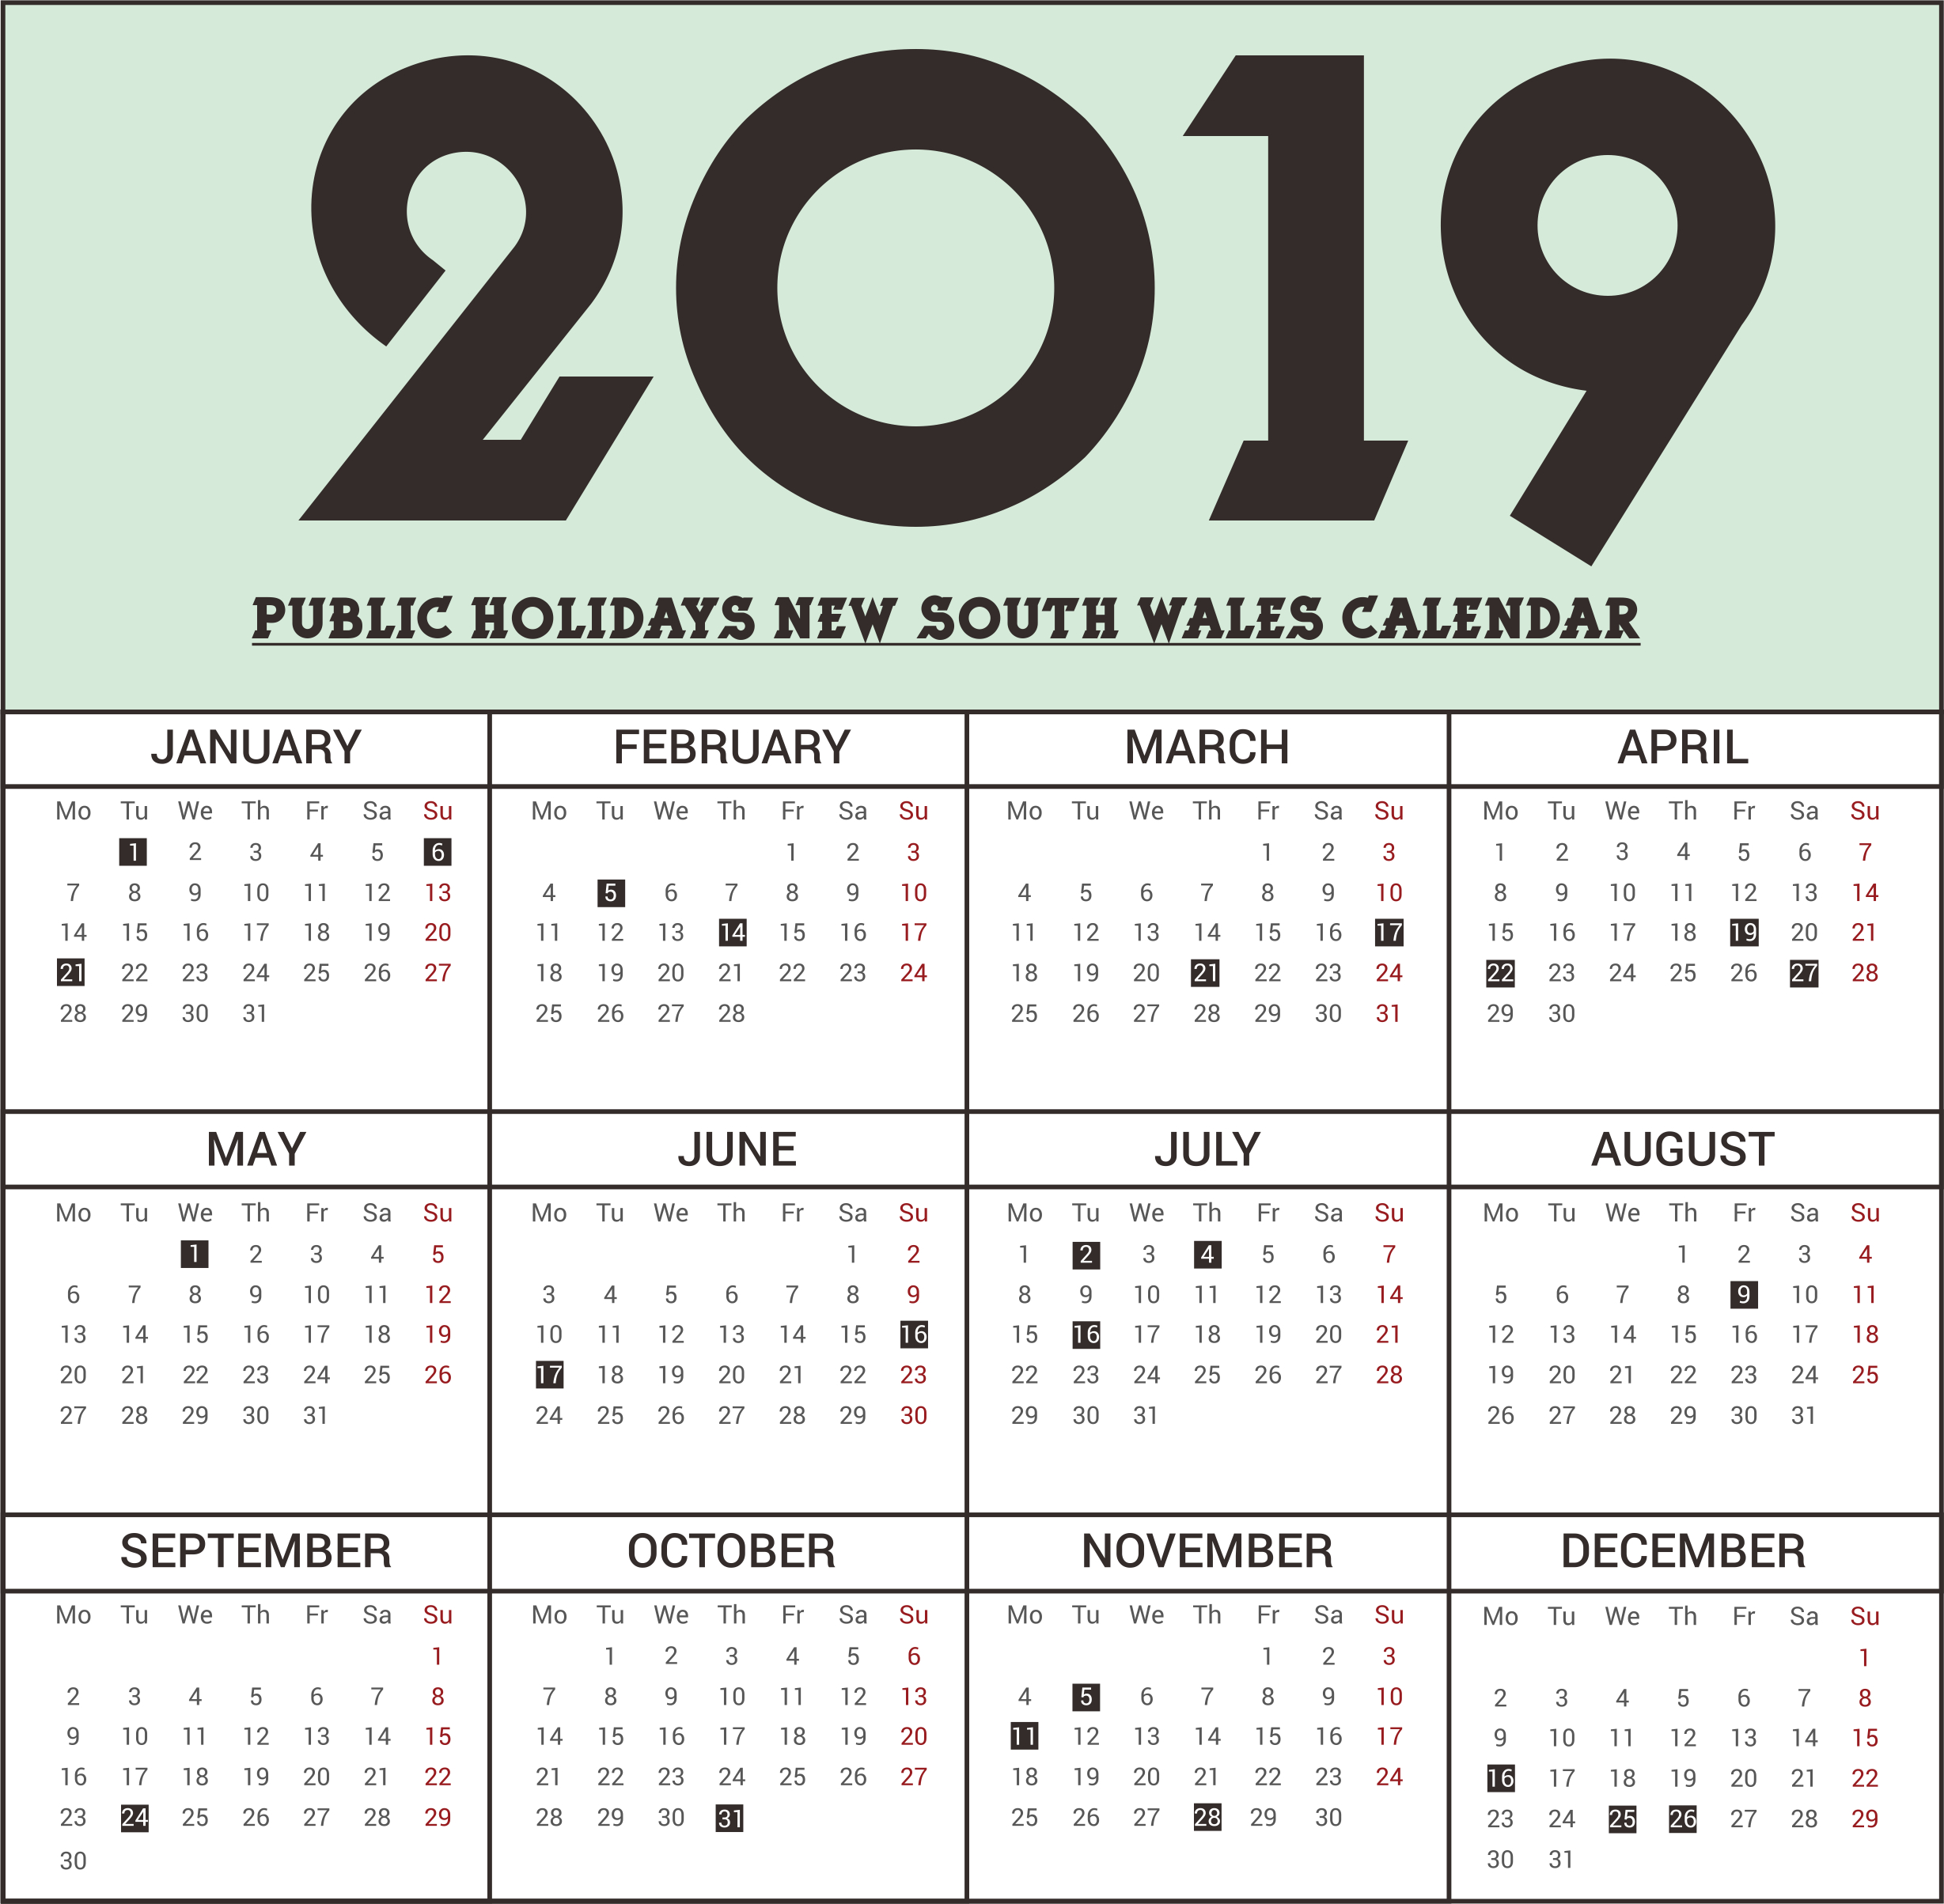 Free Nsw (New South Wales) Public Holidays 2019 Calendar